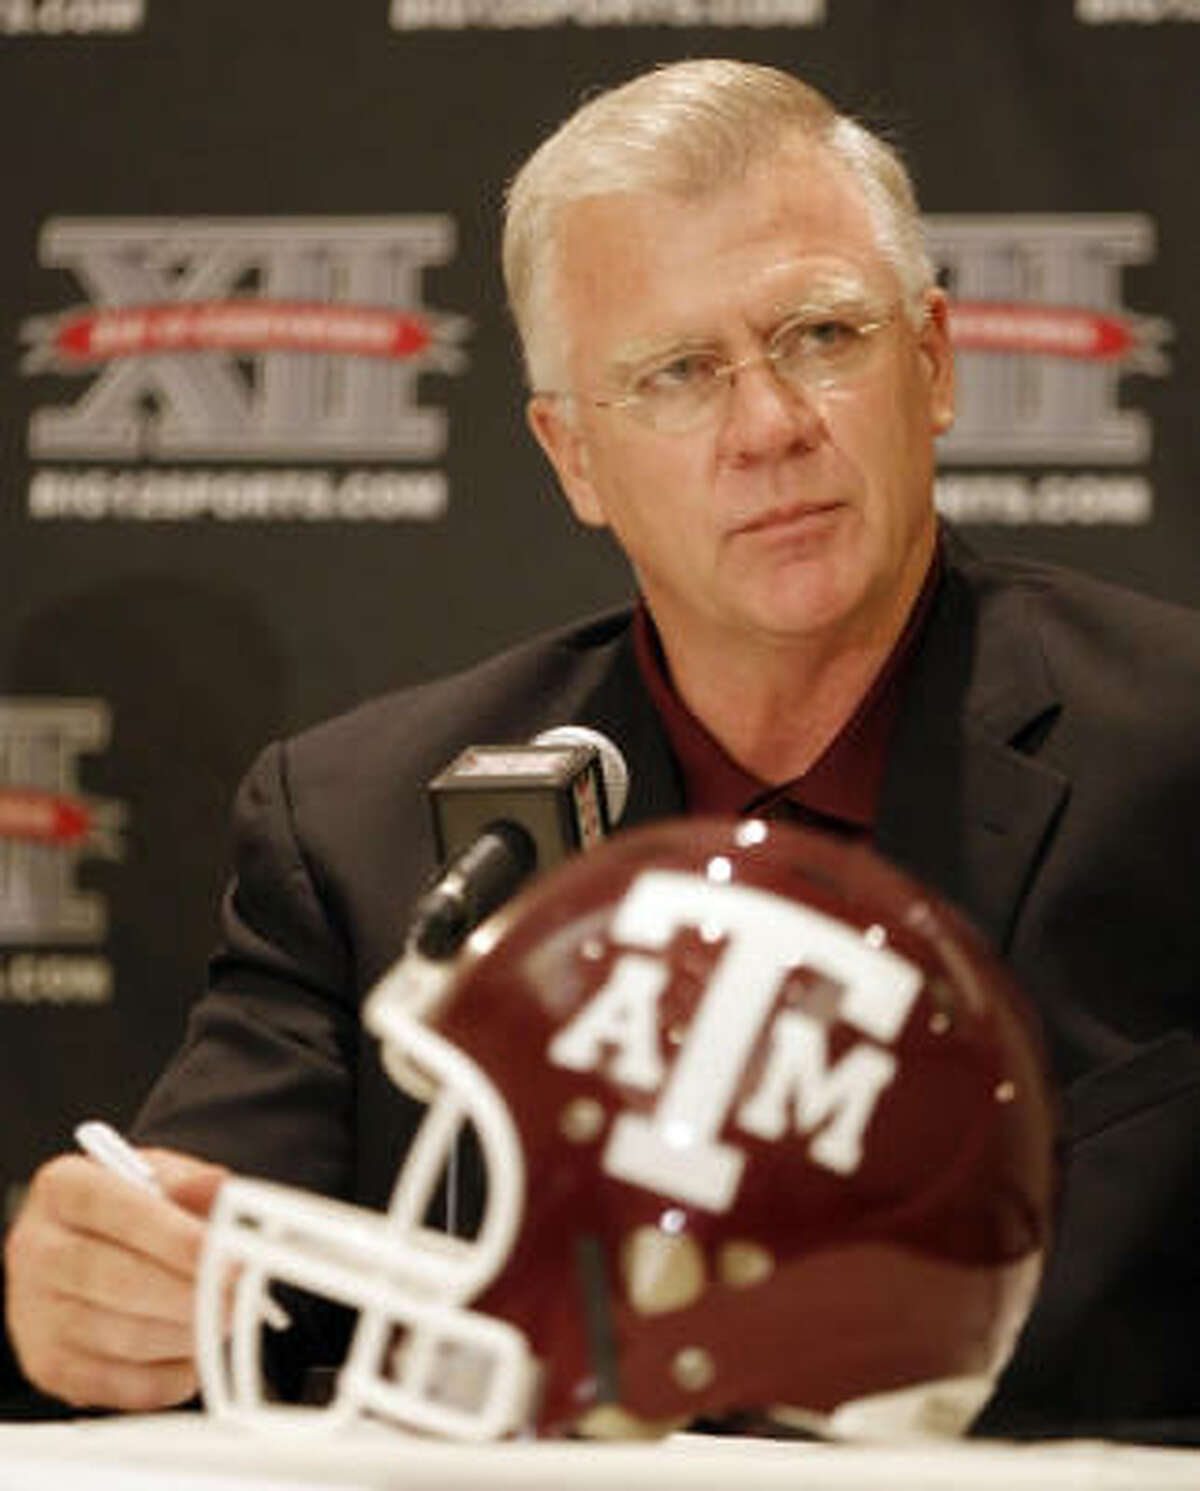 The Aggies went 4-8 in 2008, coach Mike Sherman's first season in College Station.